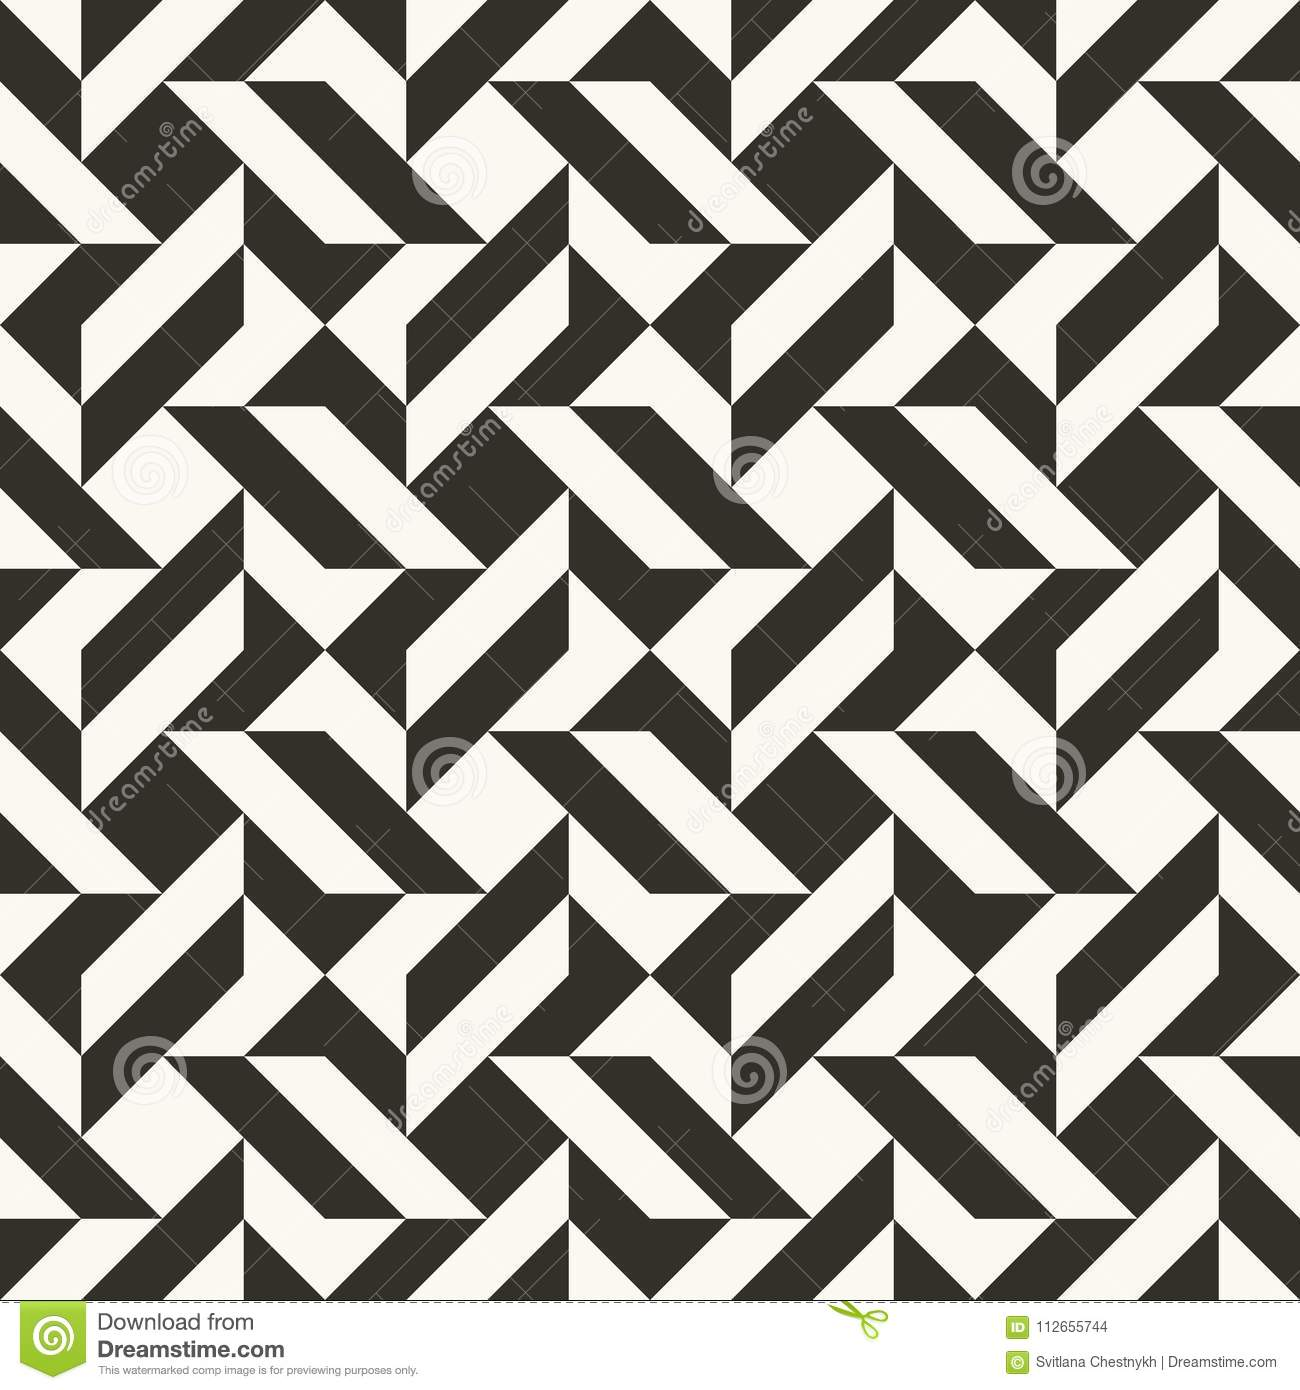 black and white abstract geometric quilt pattern. simple minimal